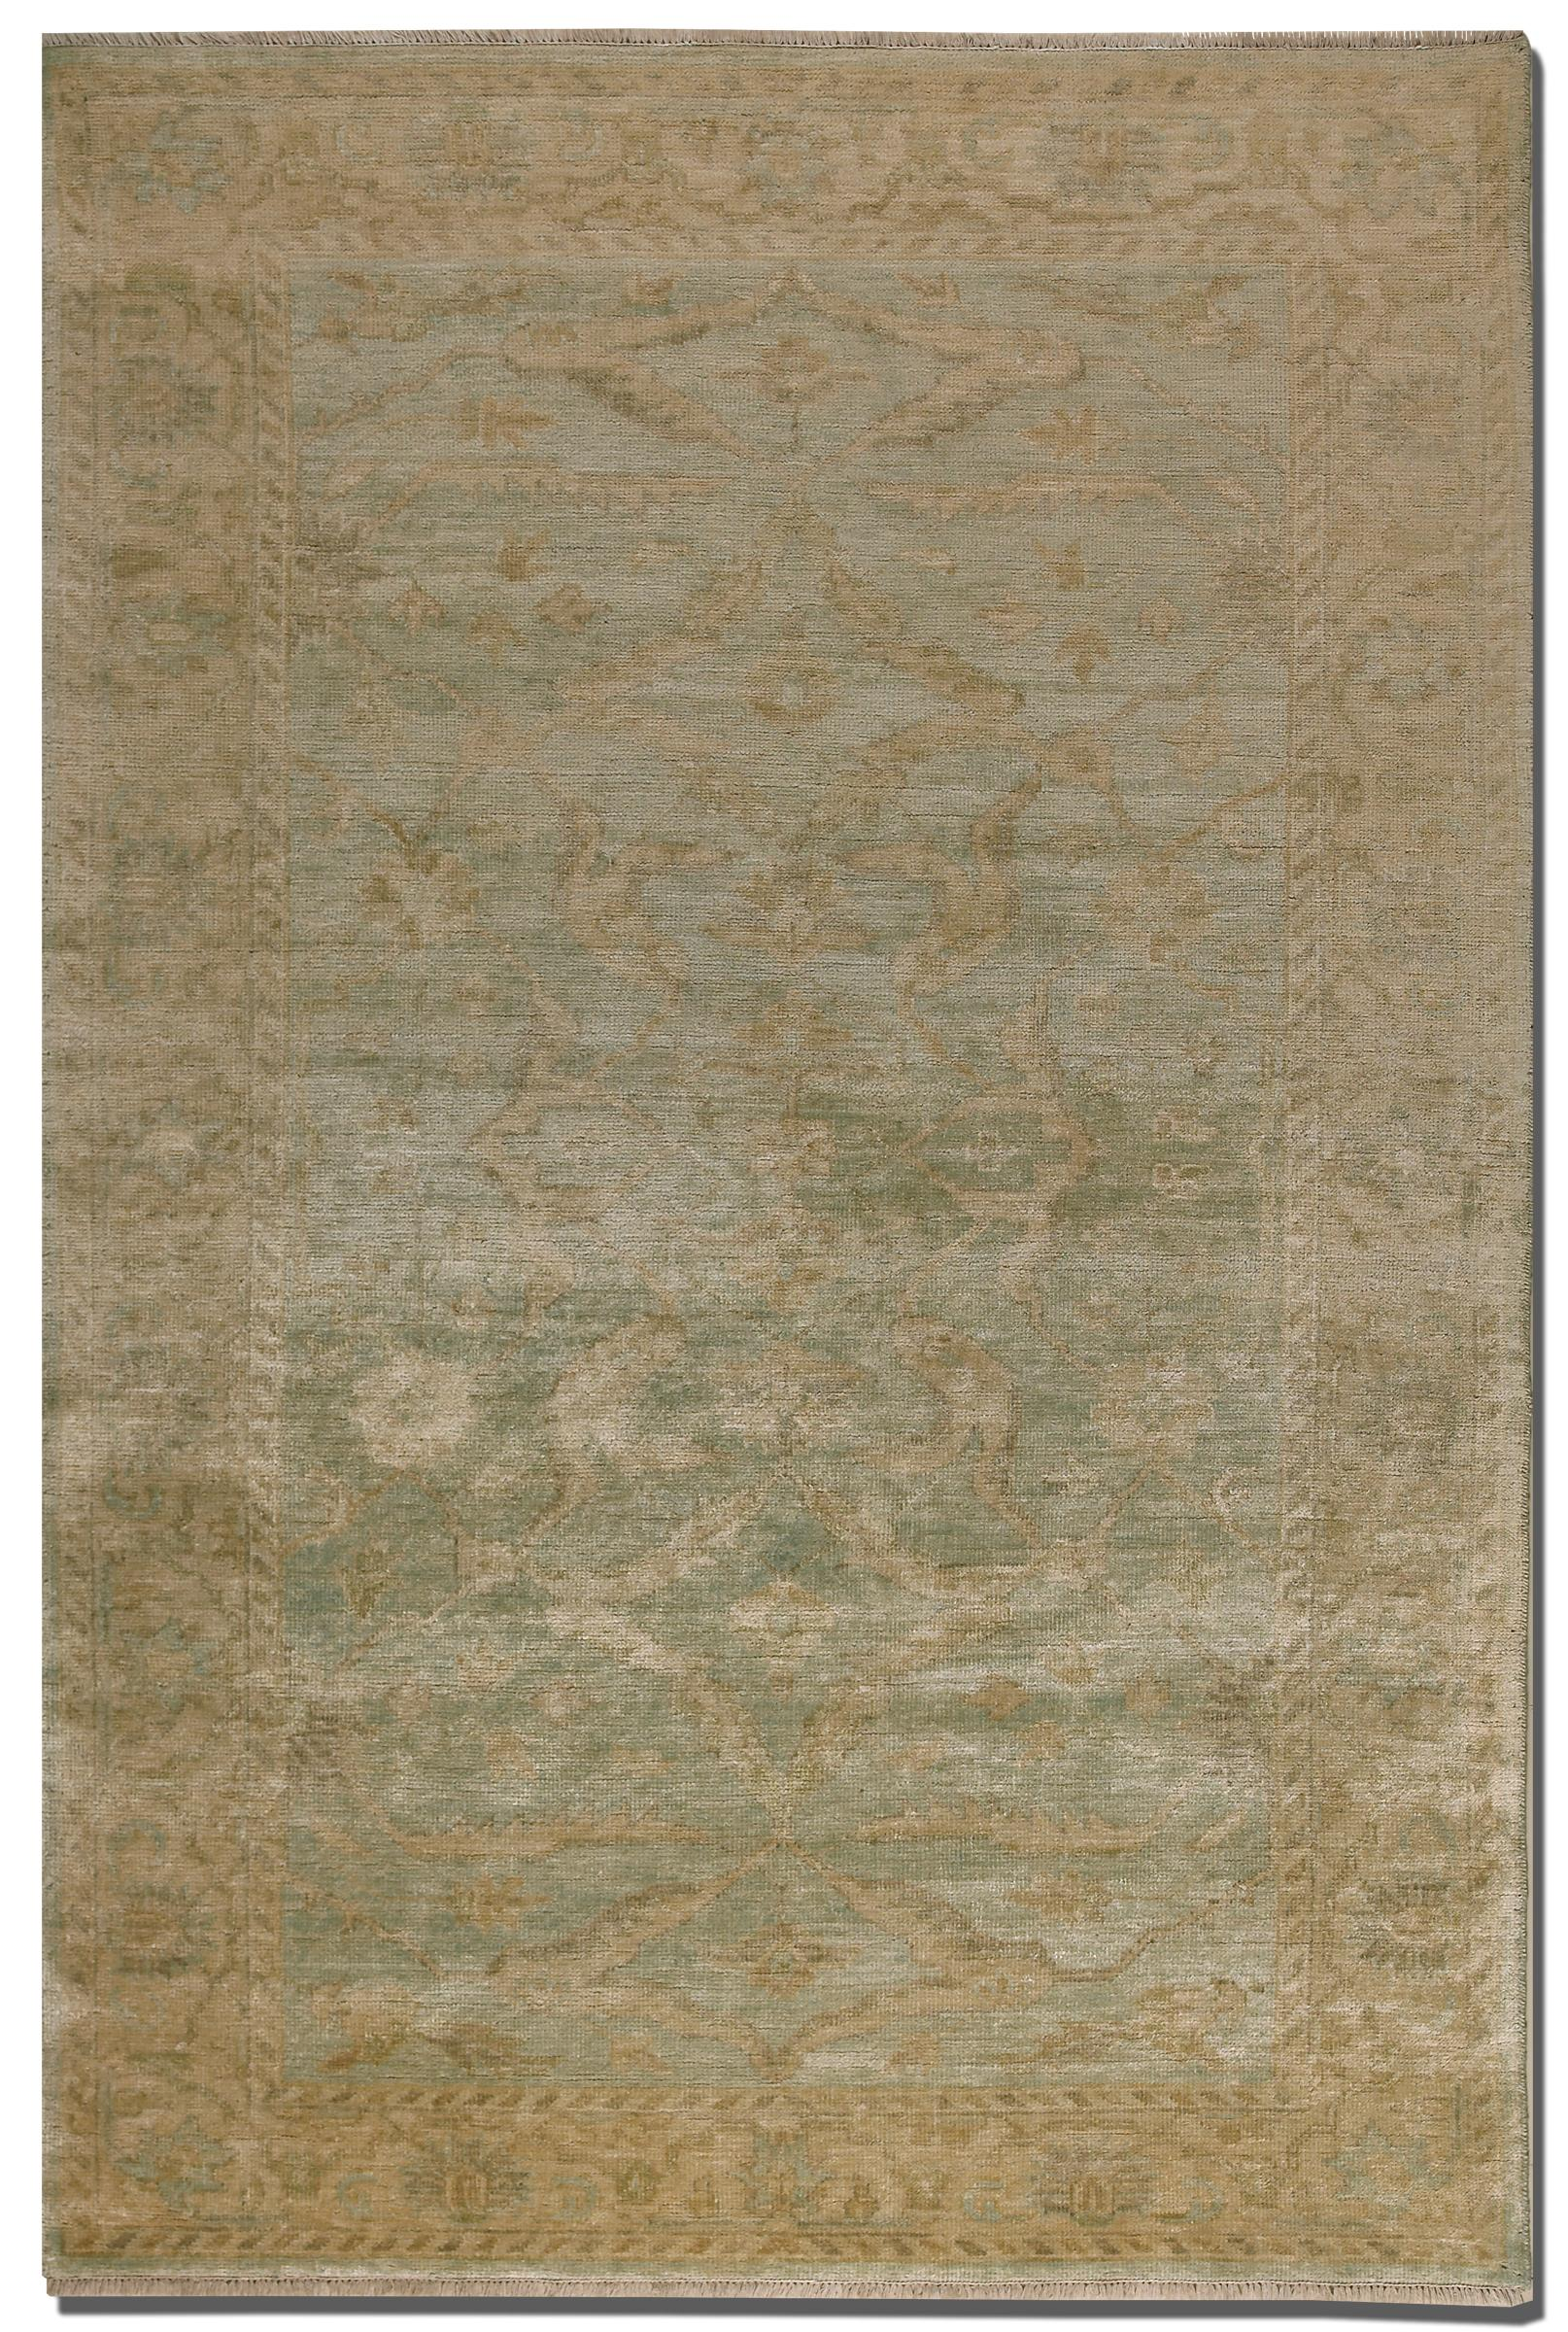 Uttermost Rugs Anna Maria 8 X 10 - Item Number: 70008-8